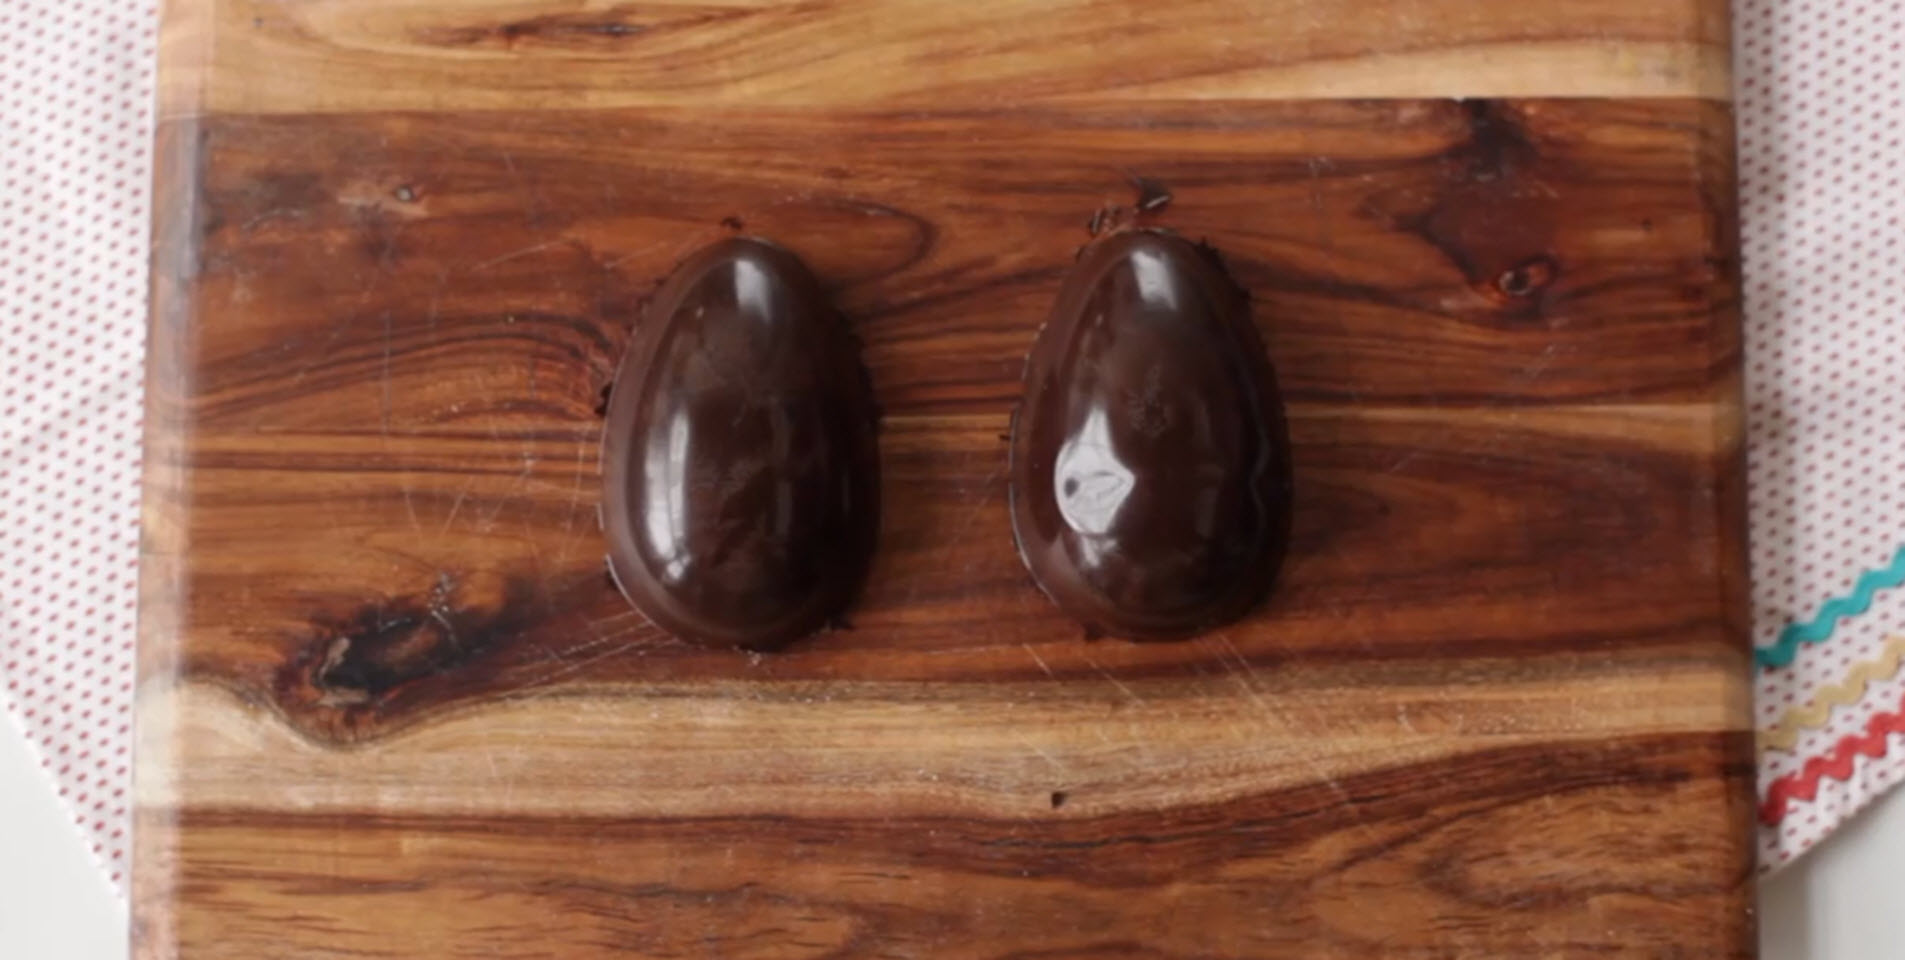 Easter Chocolate Eggs Made with a Mold